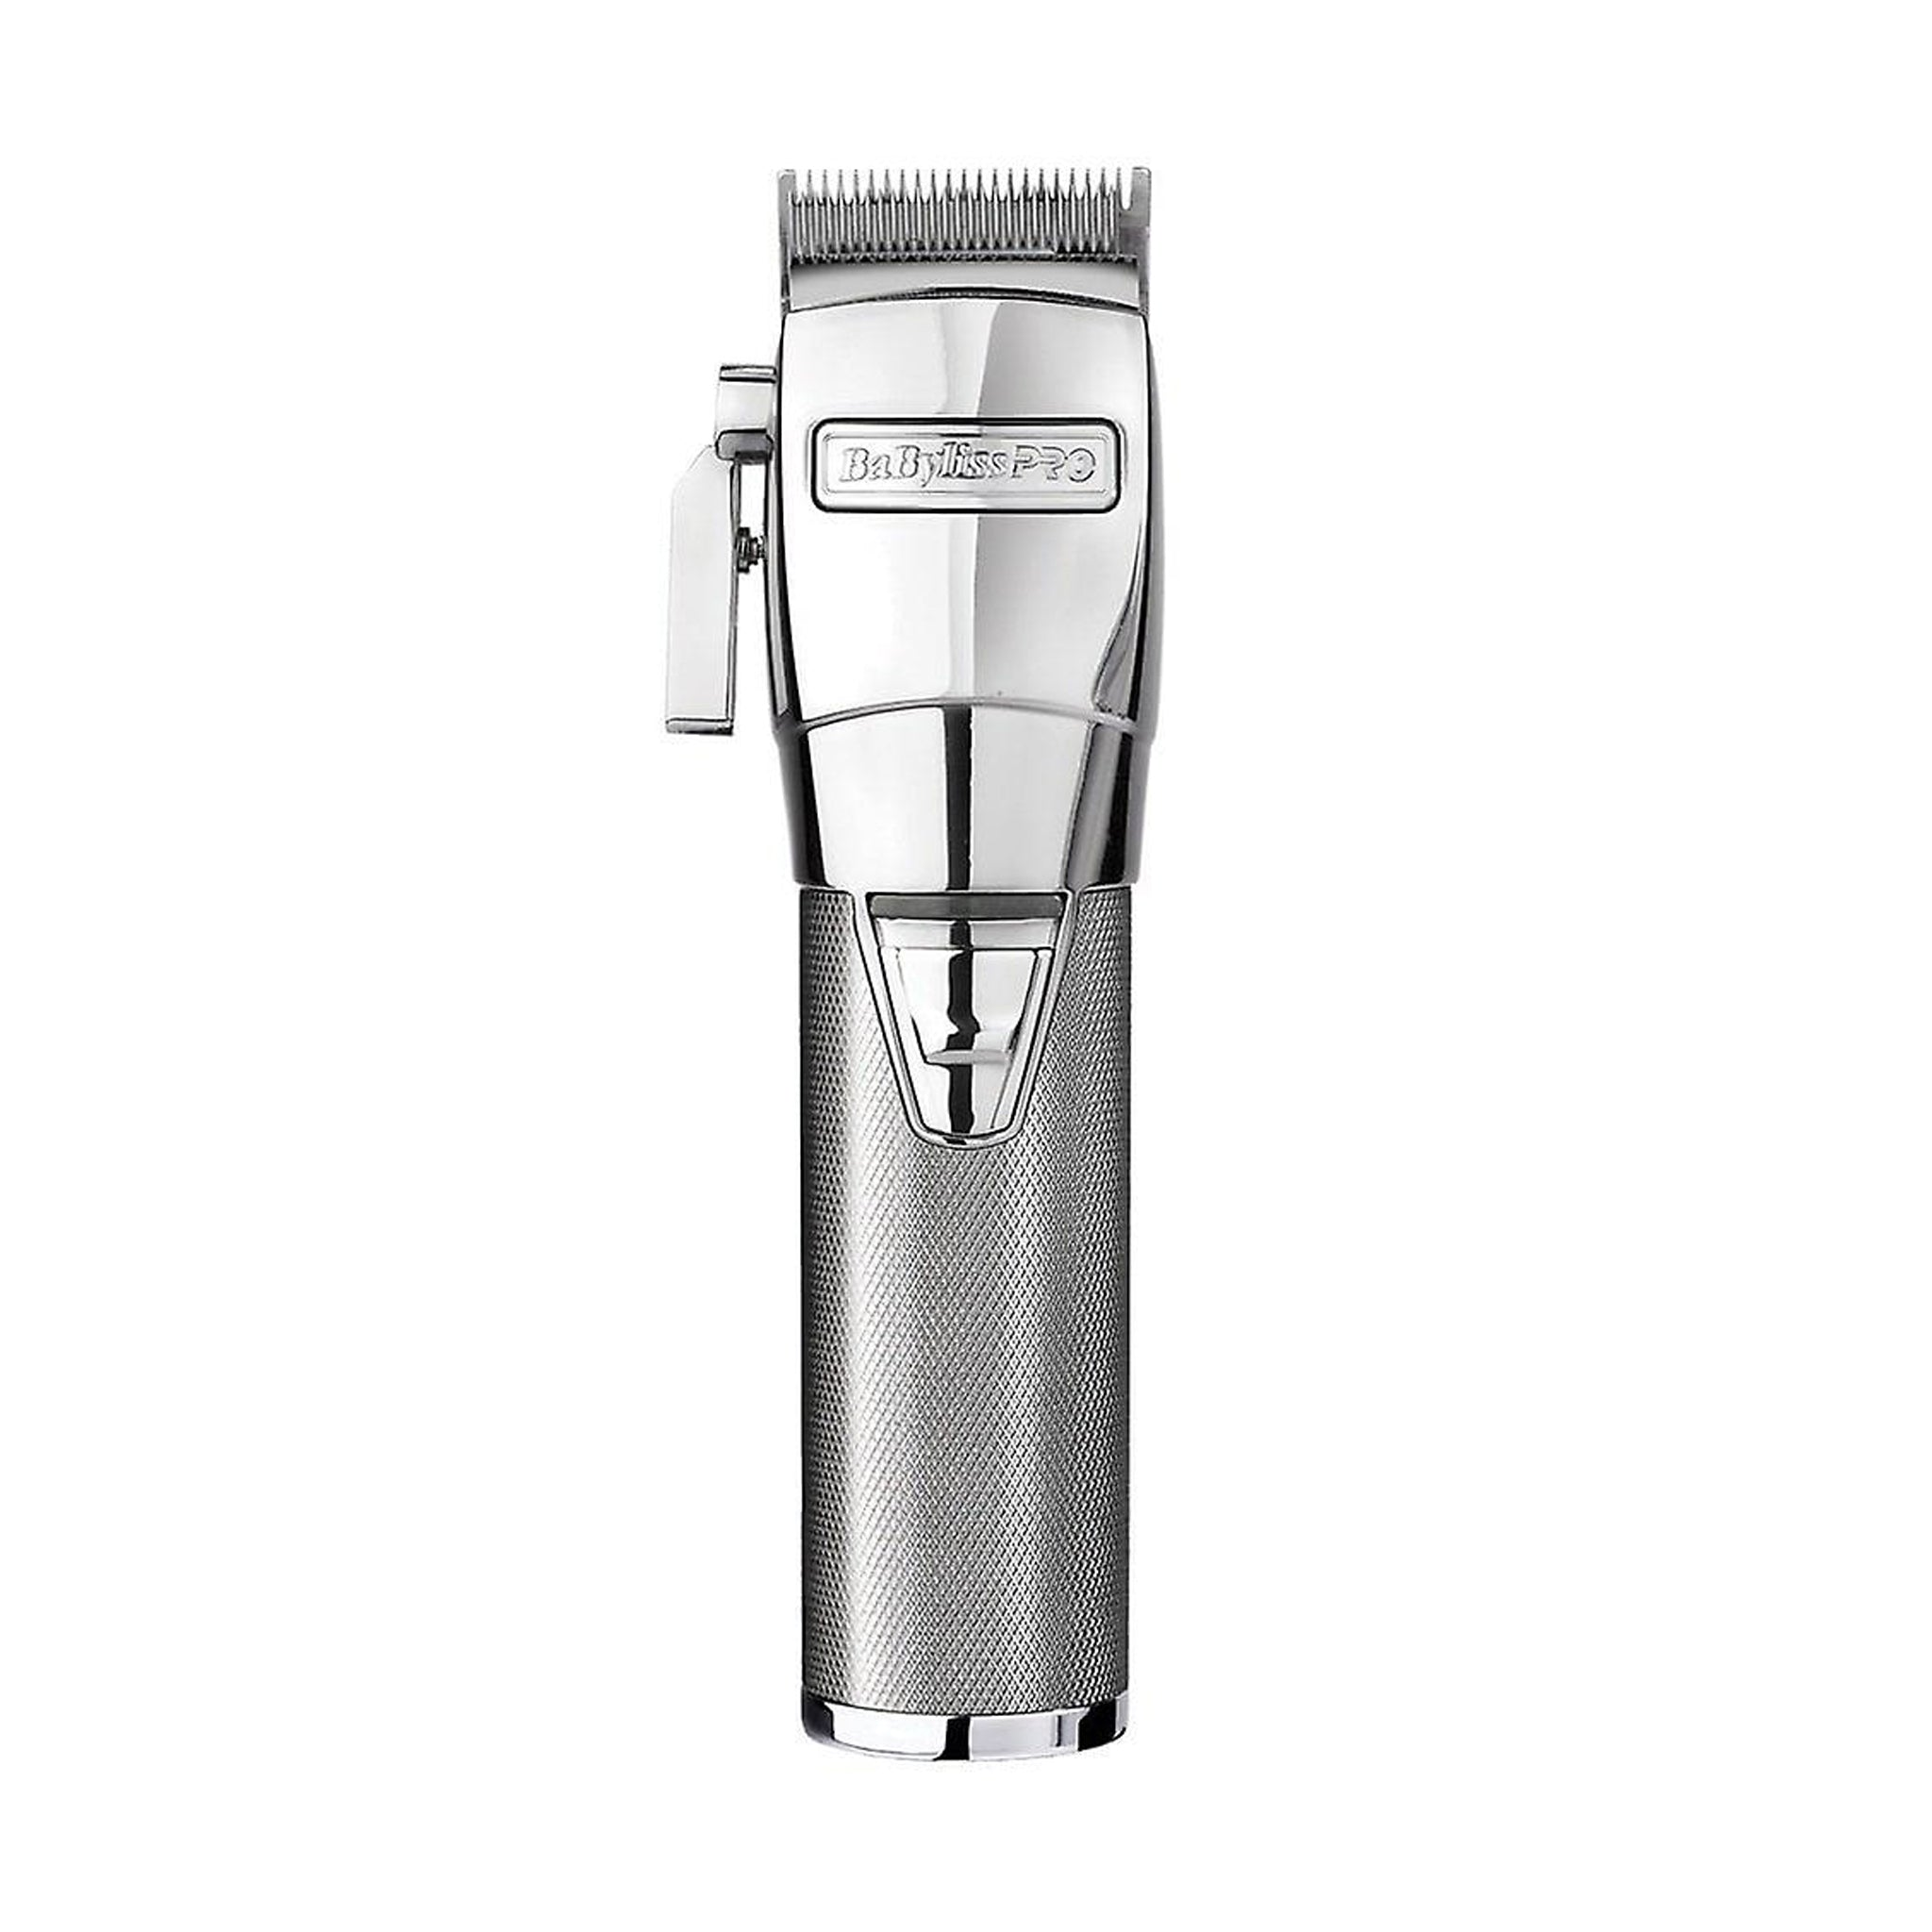 BabylissPRO ChromFX Cordless Lithium Hair Clipper